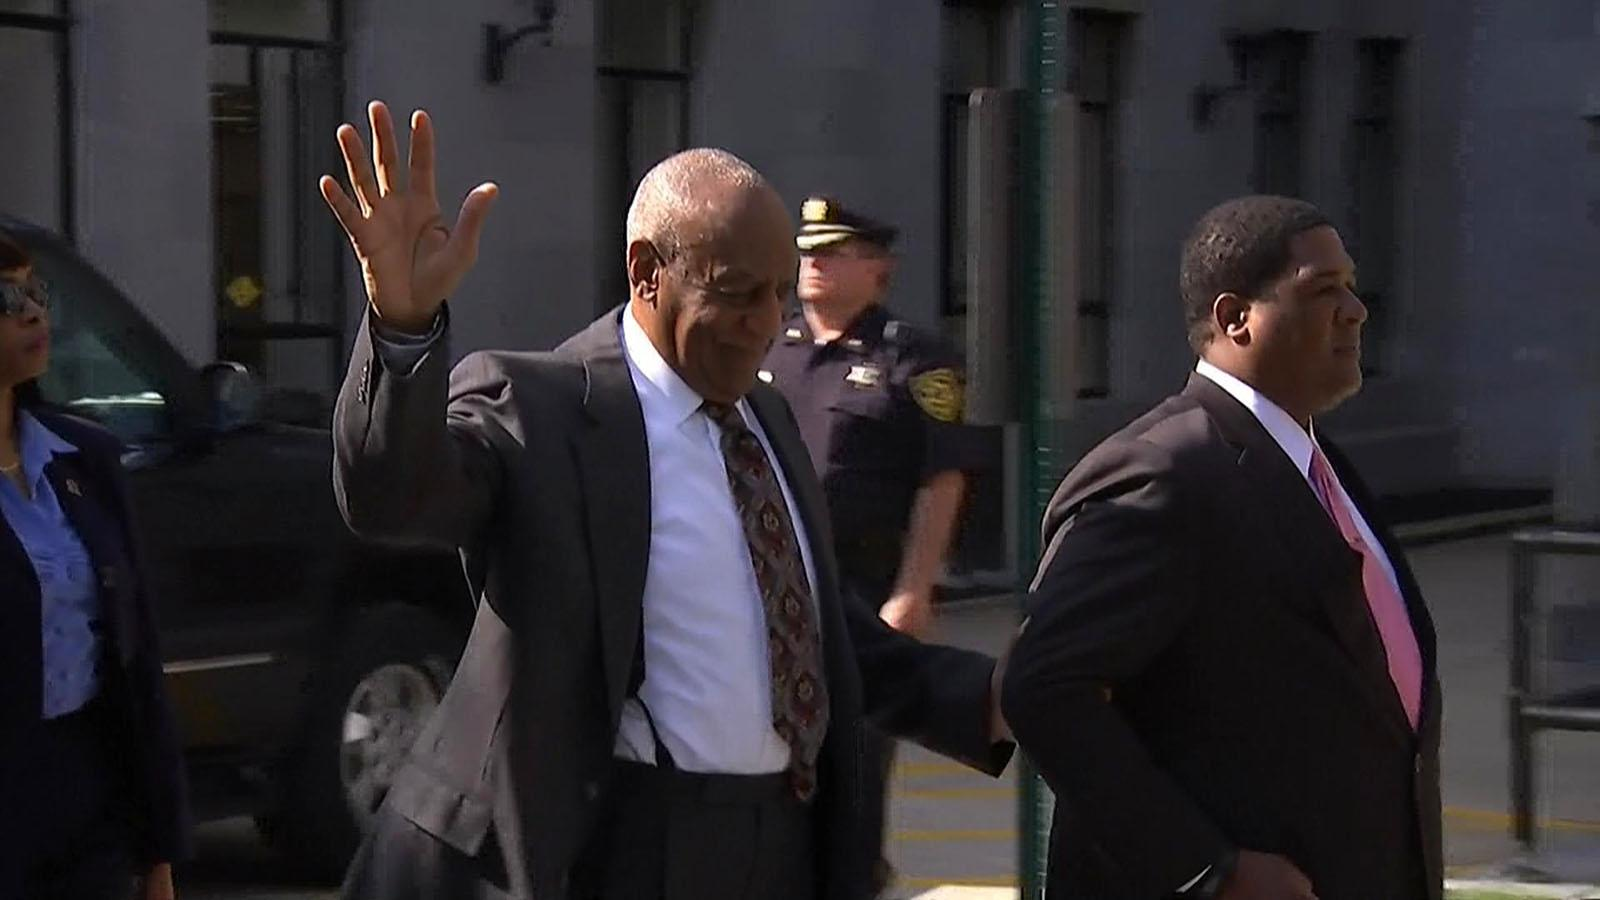 Judge Orders Bill Cosby To Stand Trial In Sexual Assault Case